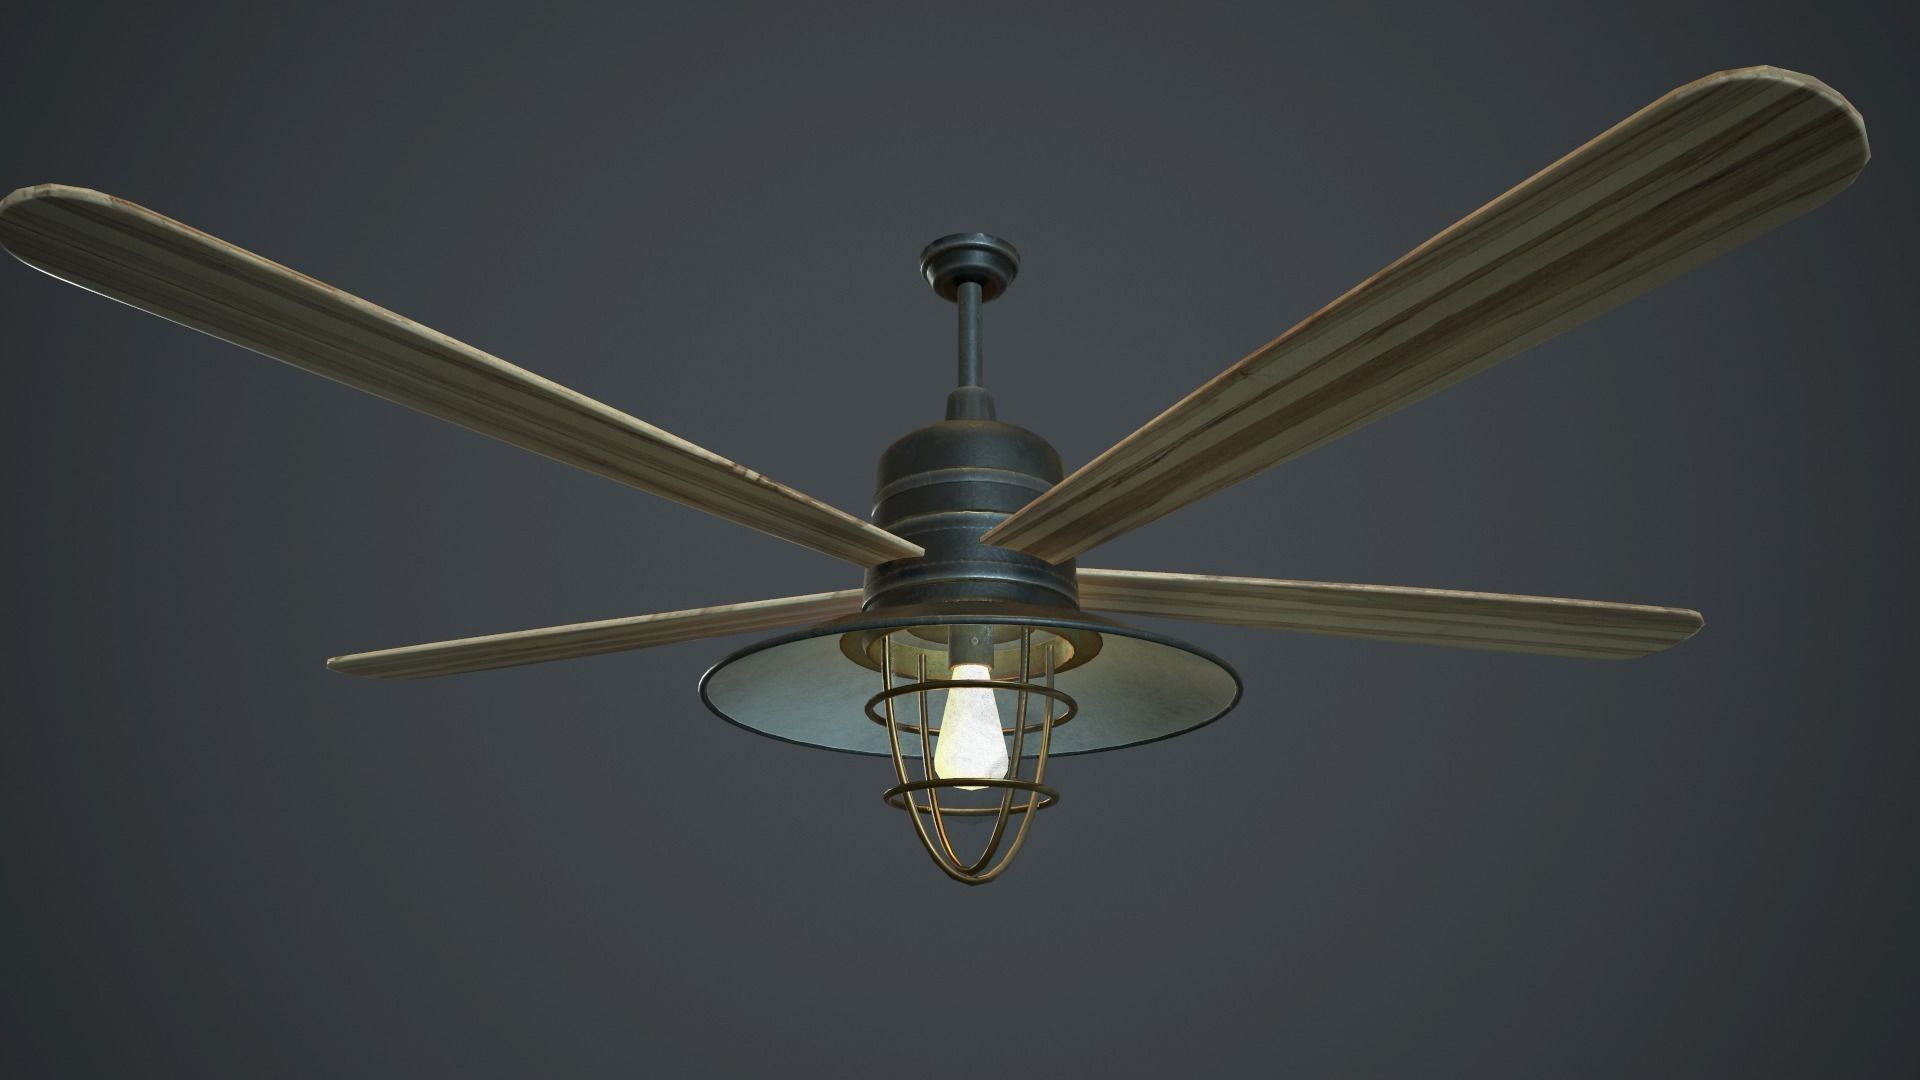 Retro Ceiling Fan With Lamp Pbr Gamre Ready 3d Model Retro Ceiling Fans Ceiling Fan Lamp